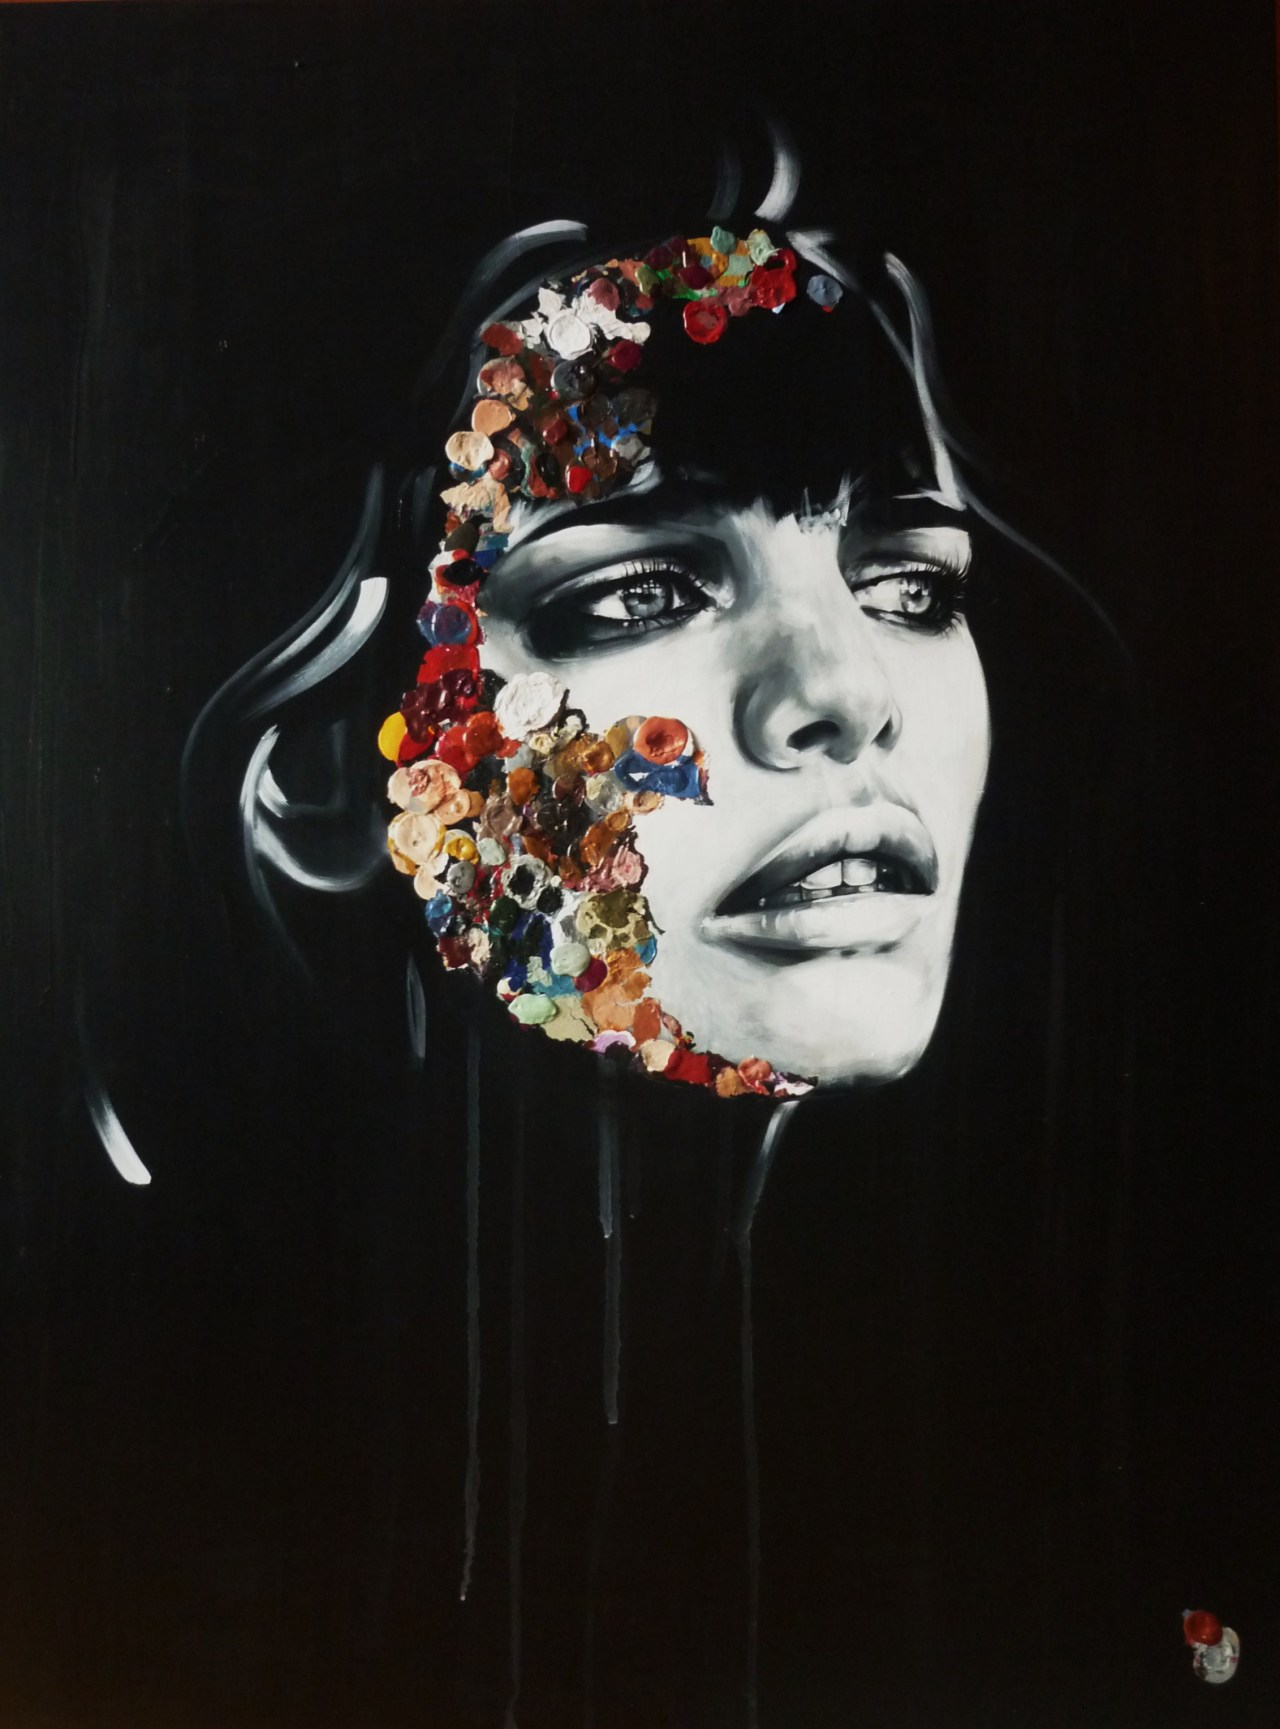 Sandra Chevrier - La Cage Arc-En-Ciel Maladif, 2013 Paintings: Acrylics on Canvashttp://www.mirusgallery.com/artists/sandra-chevrier